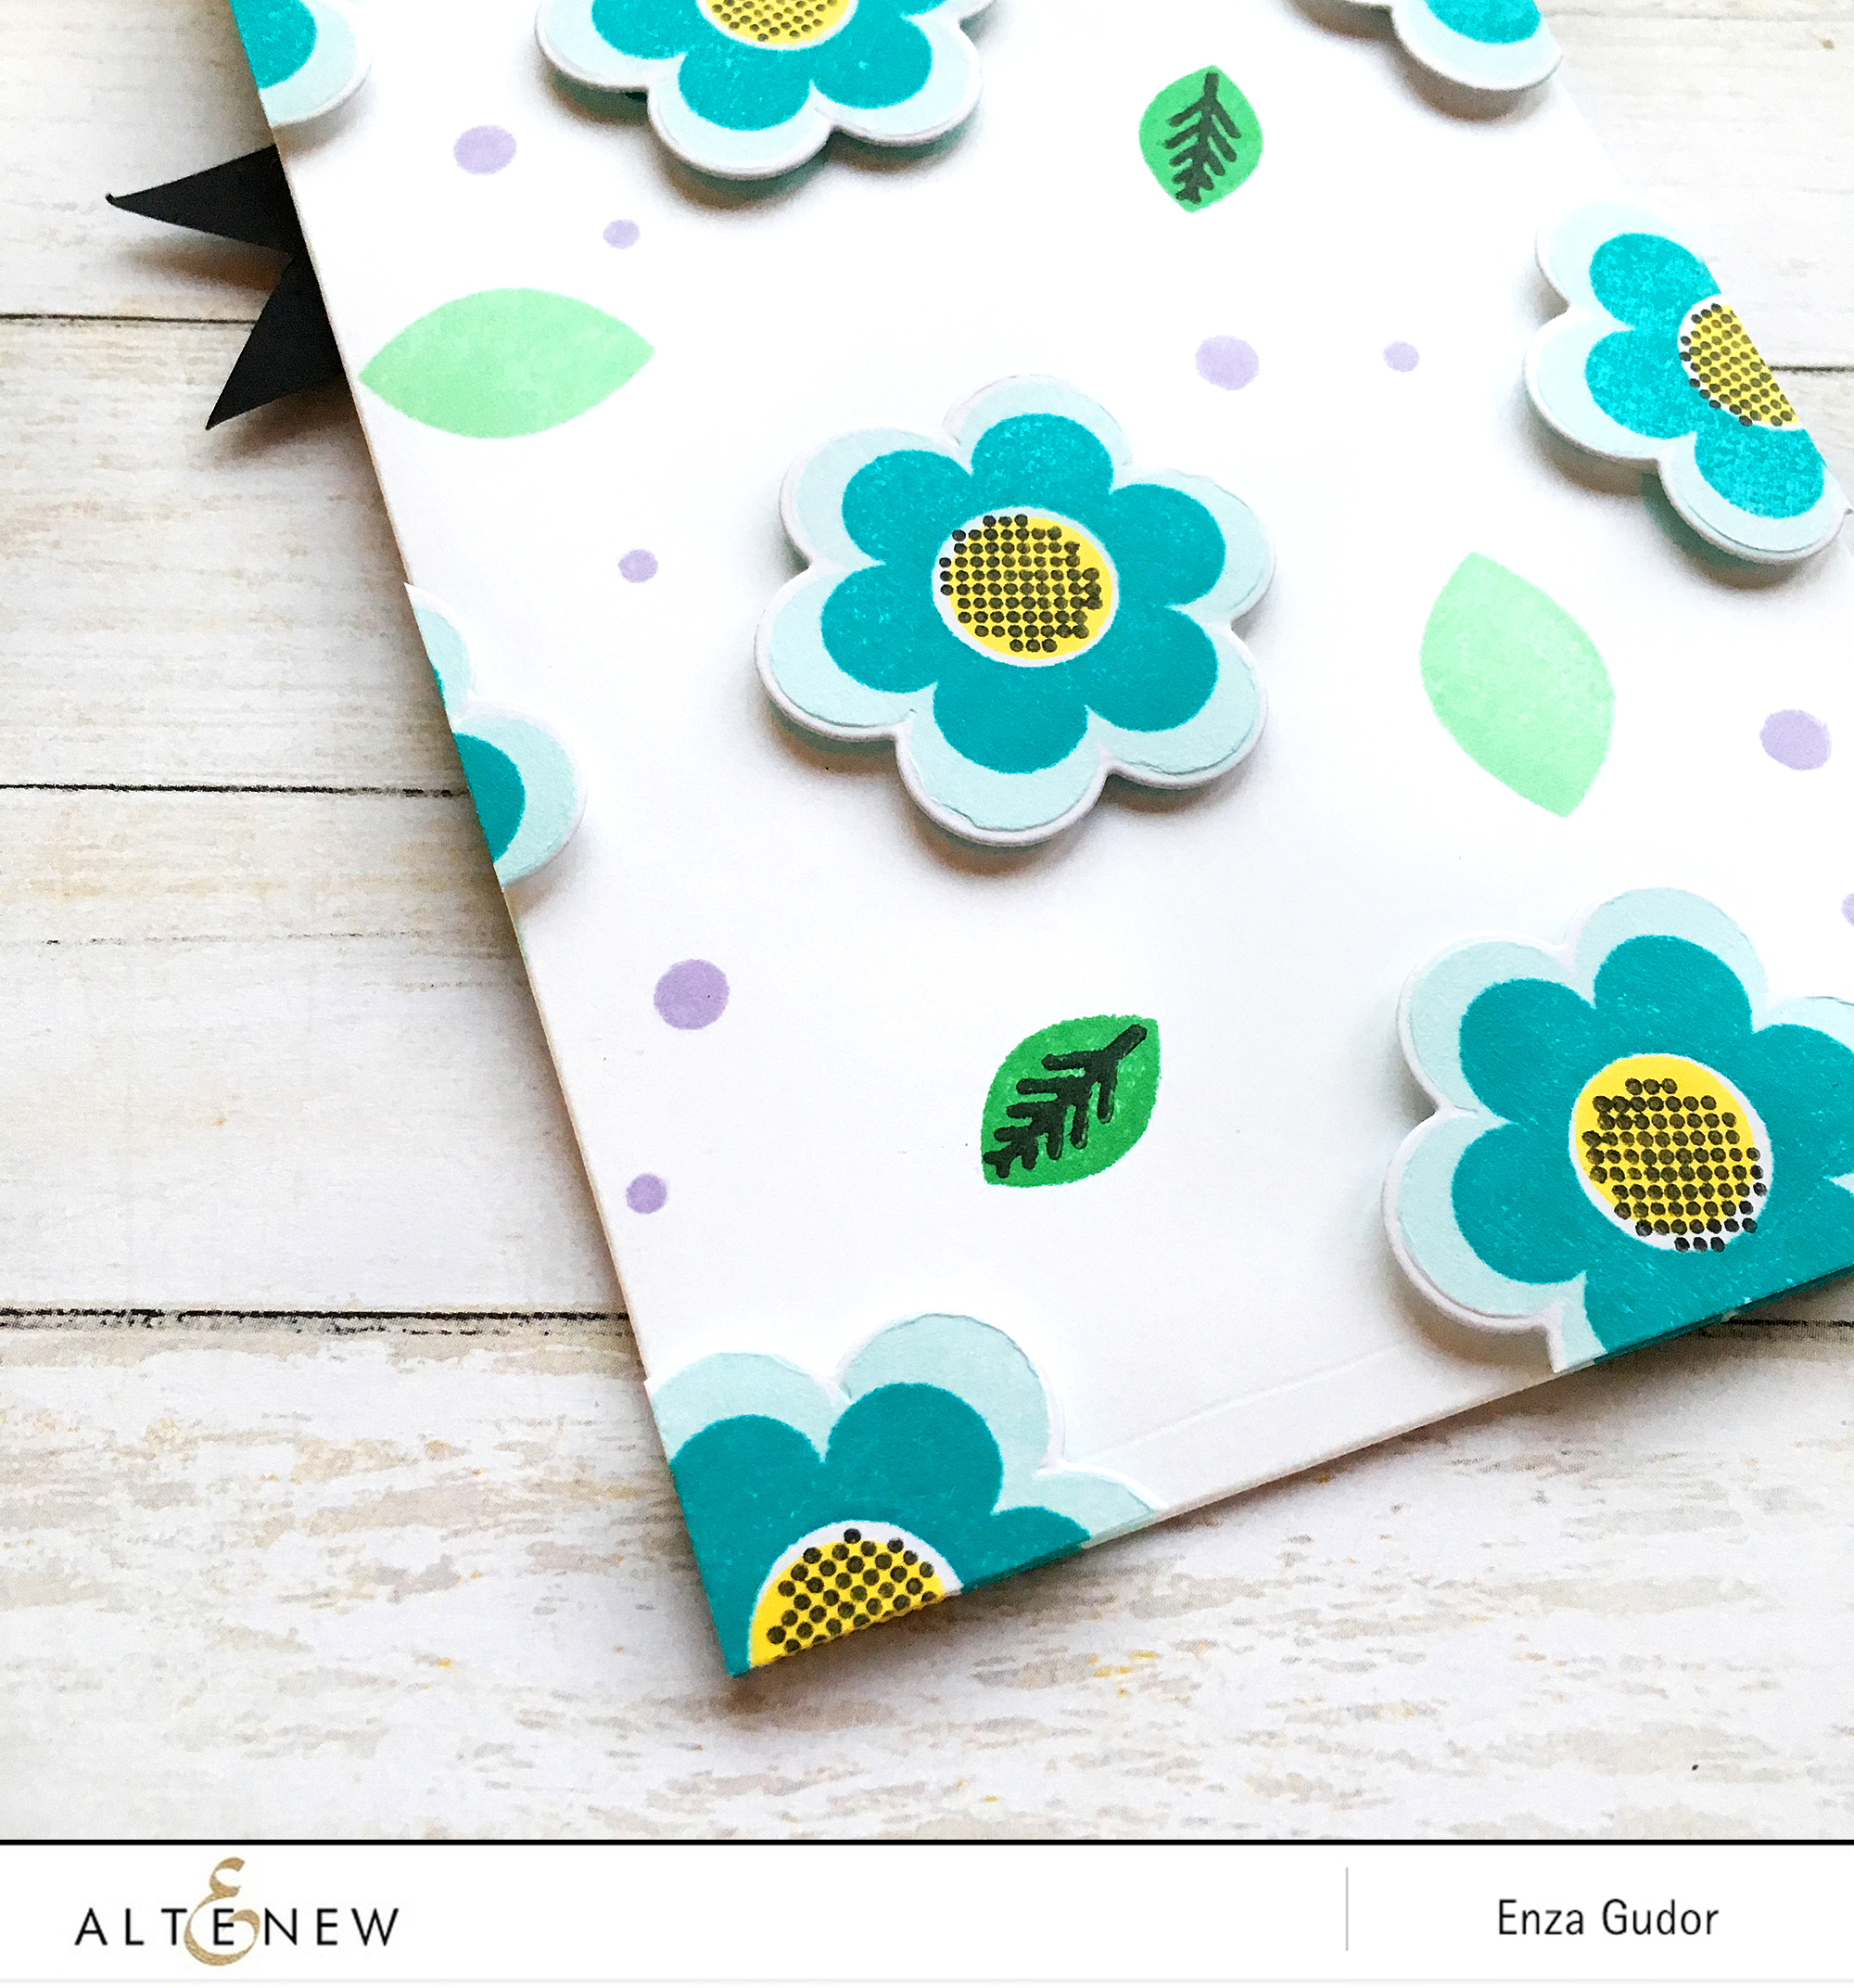 Coin envelopes by @enzamg for @altenew. #coinenvelopes #envelopes #stamping #diy #handmade